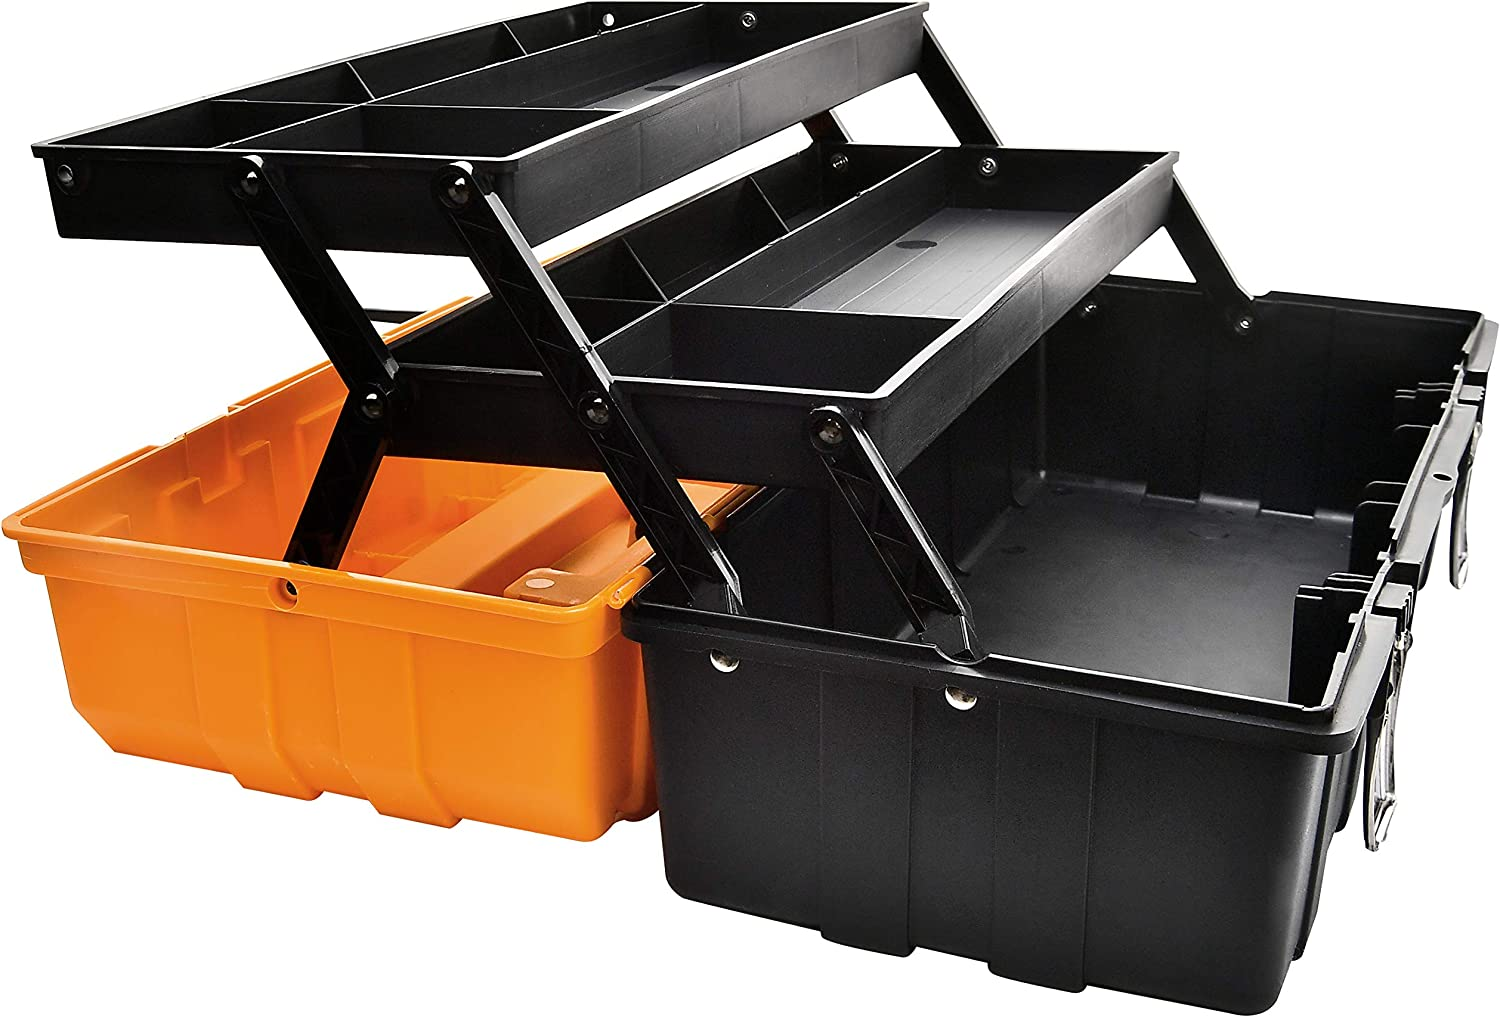 17-Inch Three-Layer Plastic Storage Box/Tool Box/Sewing Box Organizer, Multipurpose Organizer and Portable Handled Storage Case for Art Craft and Cosmetic (Style A)